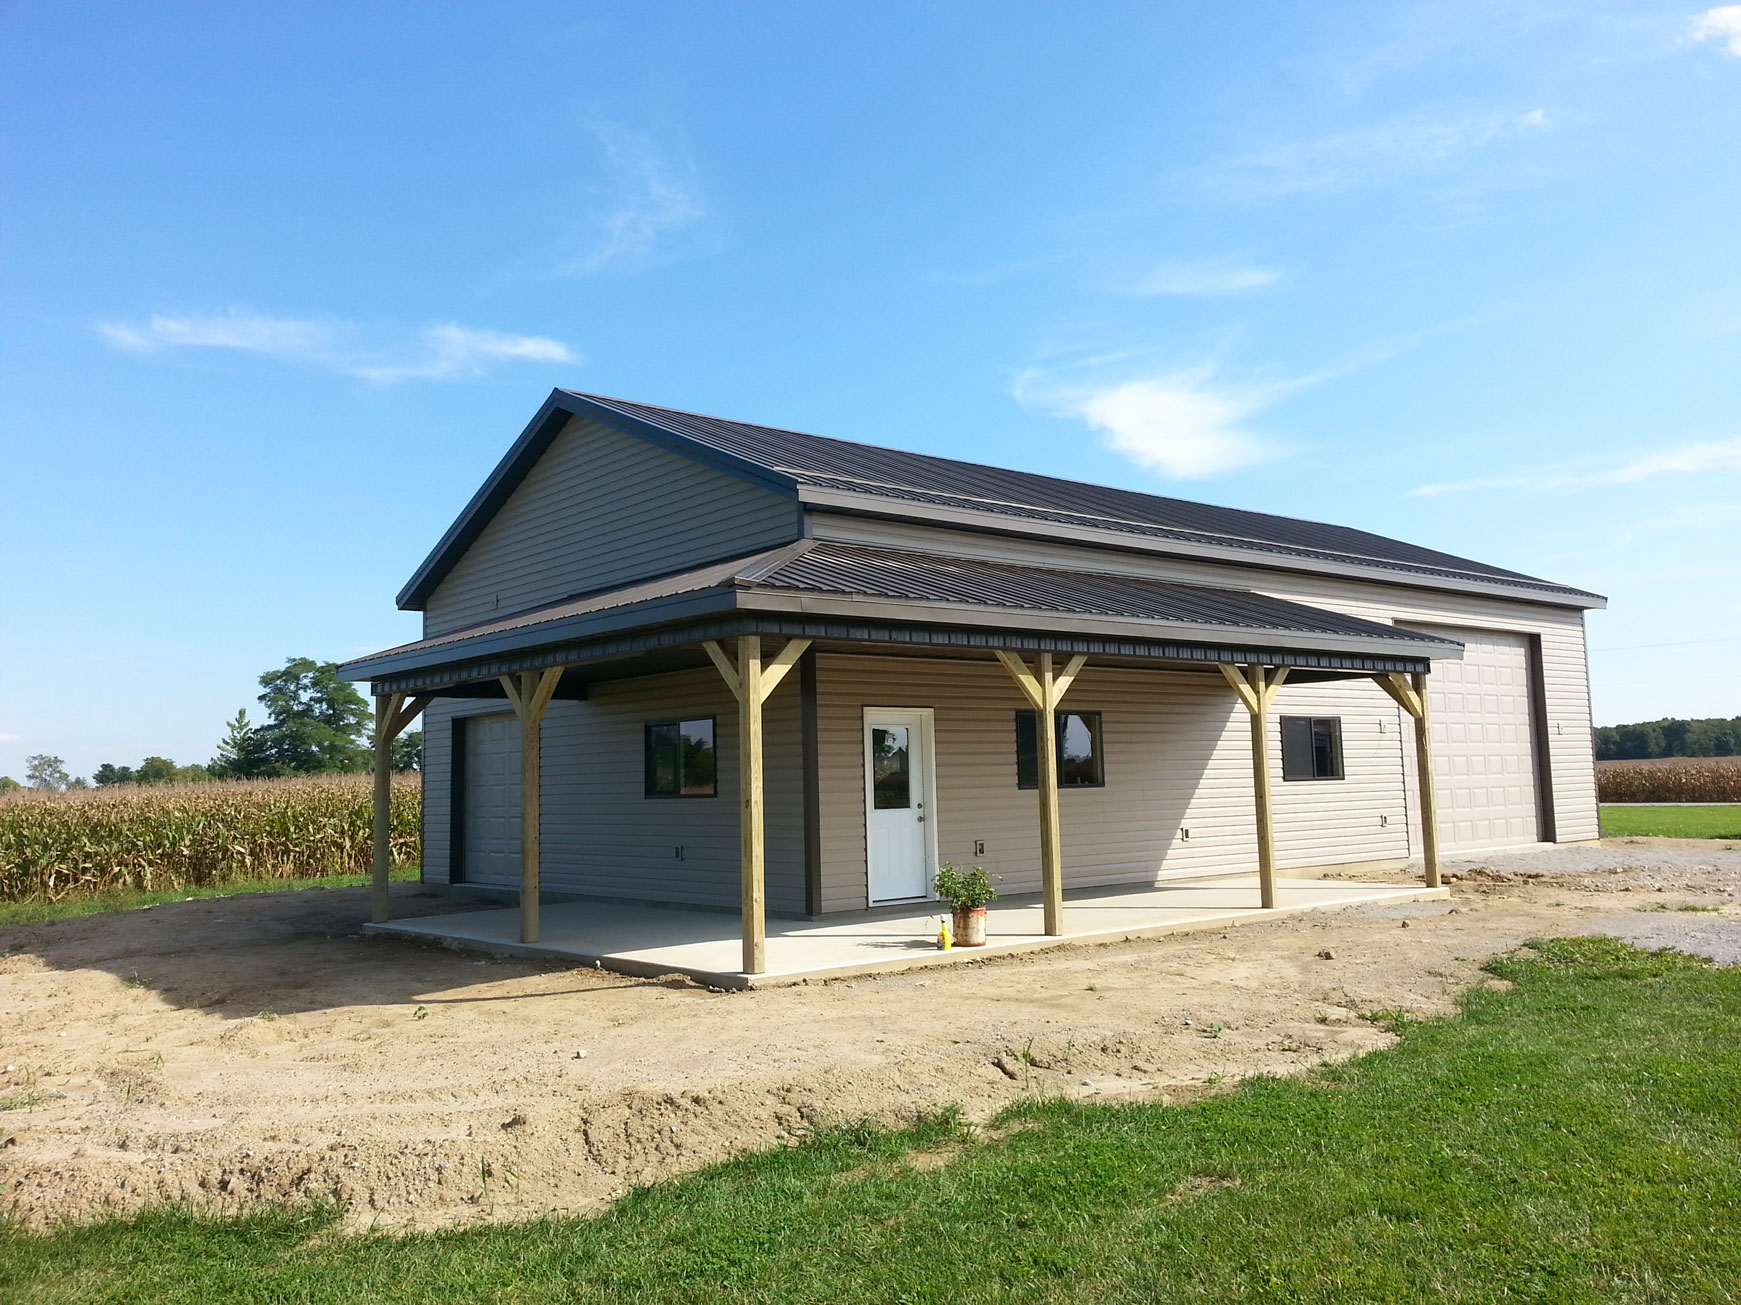 amish buildings dauphin pole custom elizabethtown sheds structures lancaster barns pa located pinecreek built designed at in